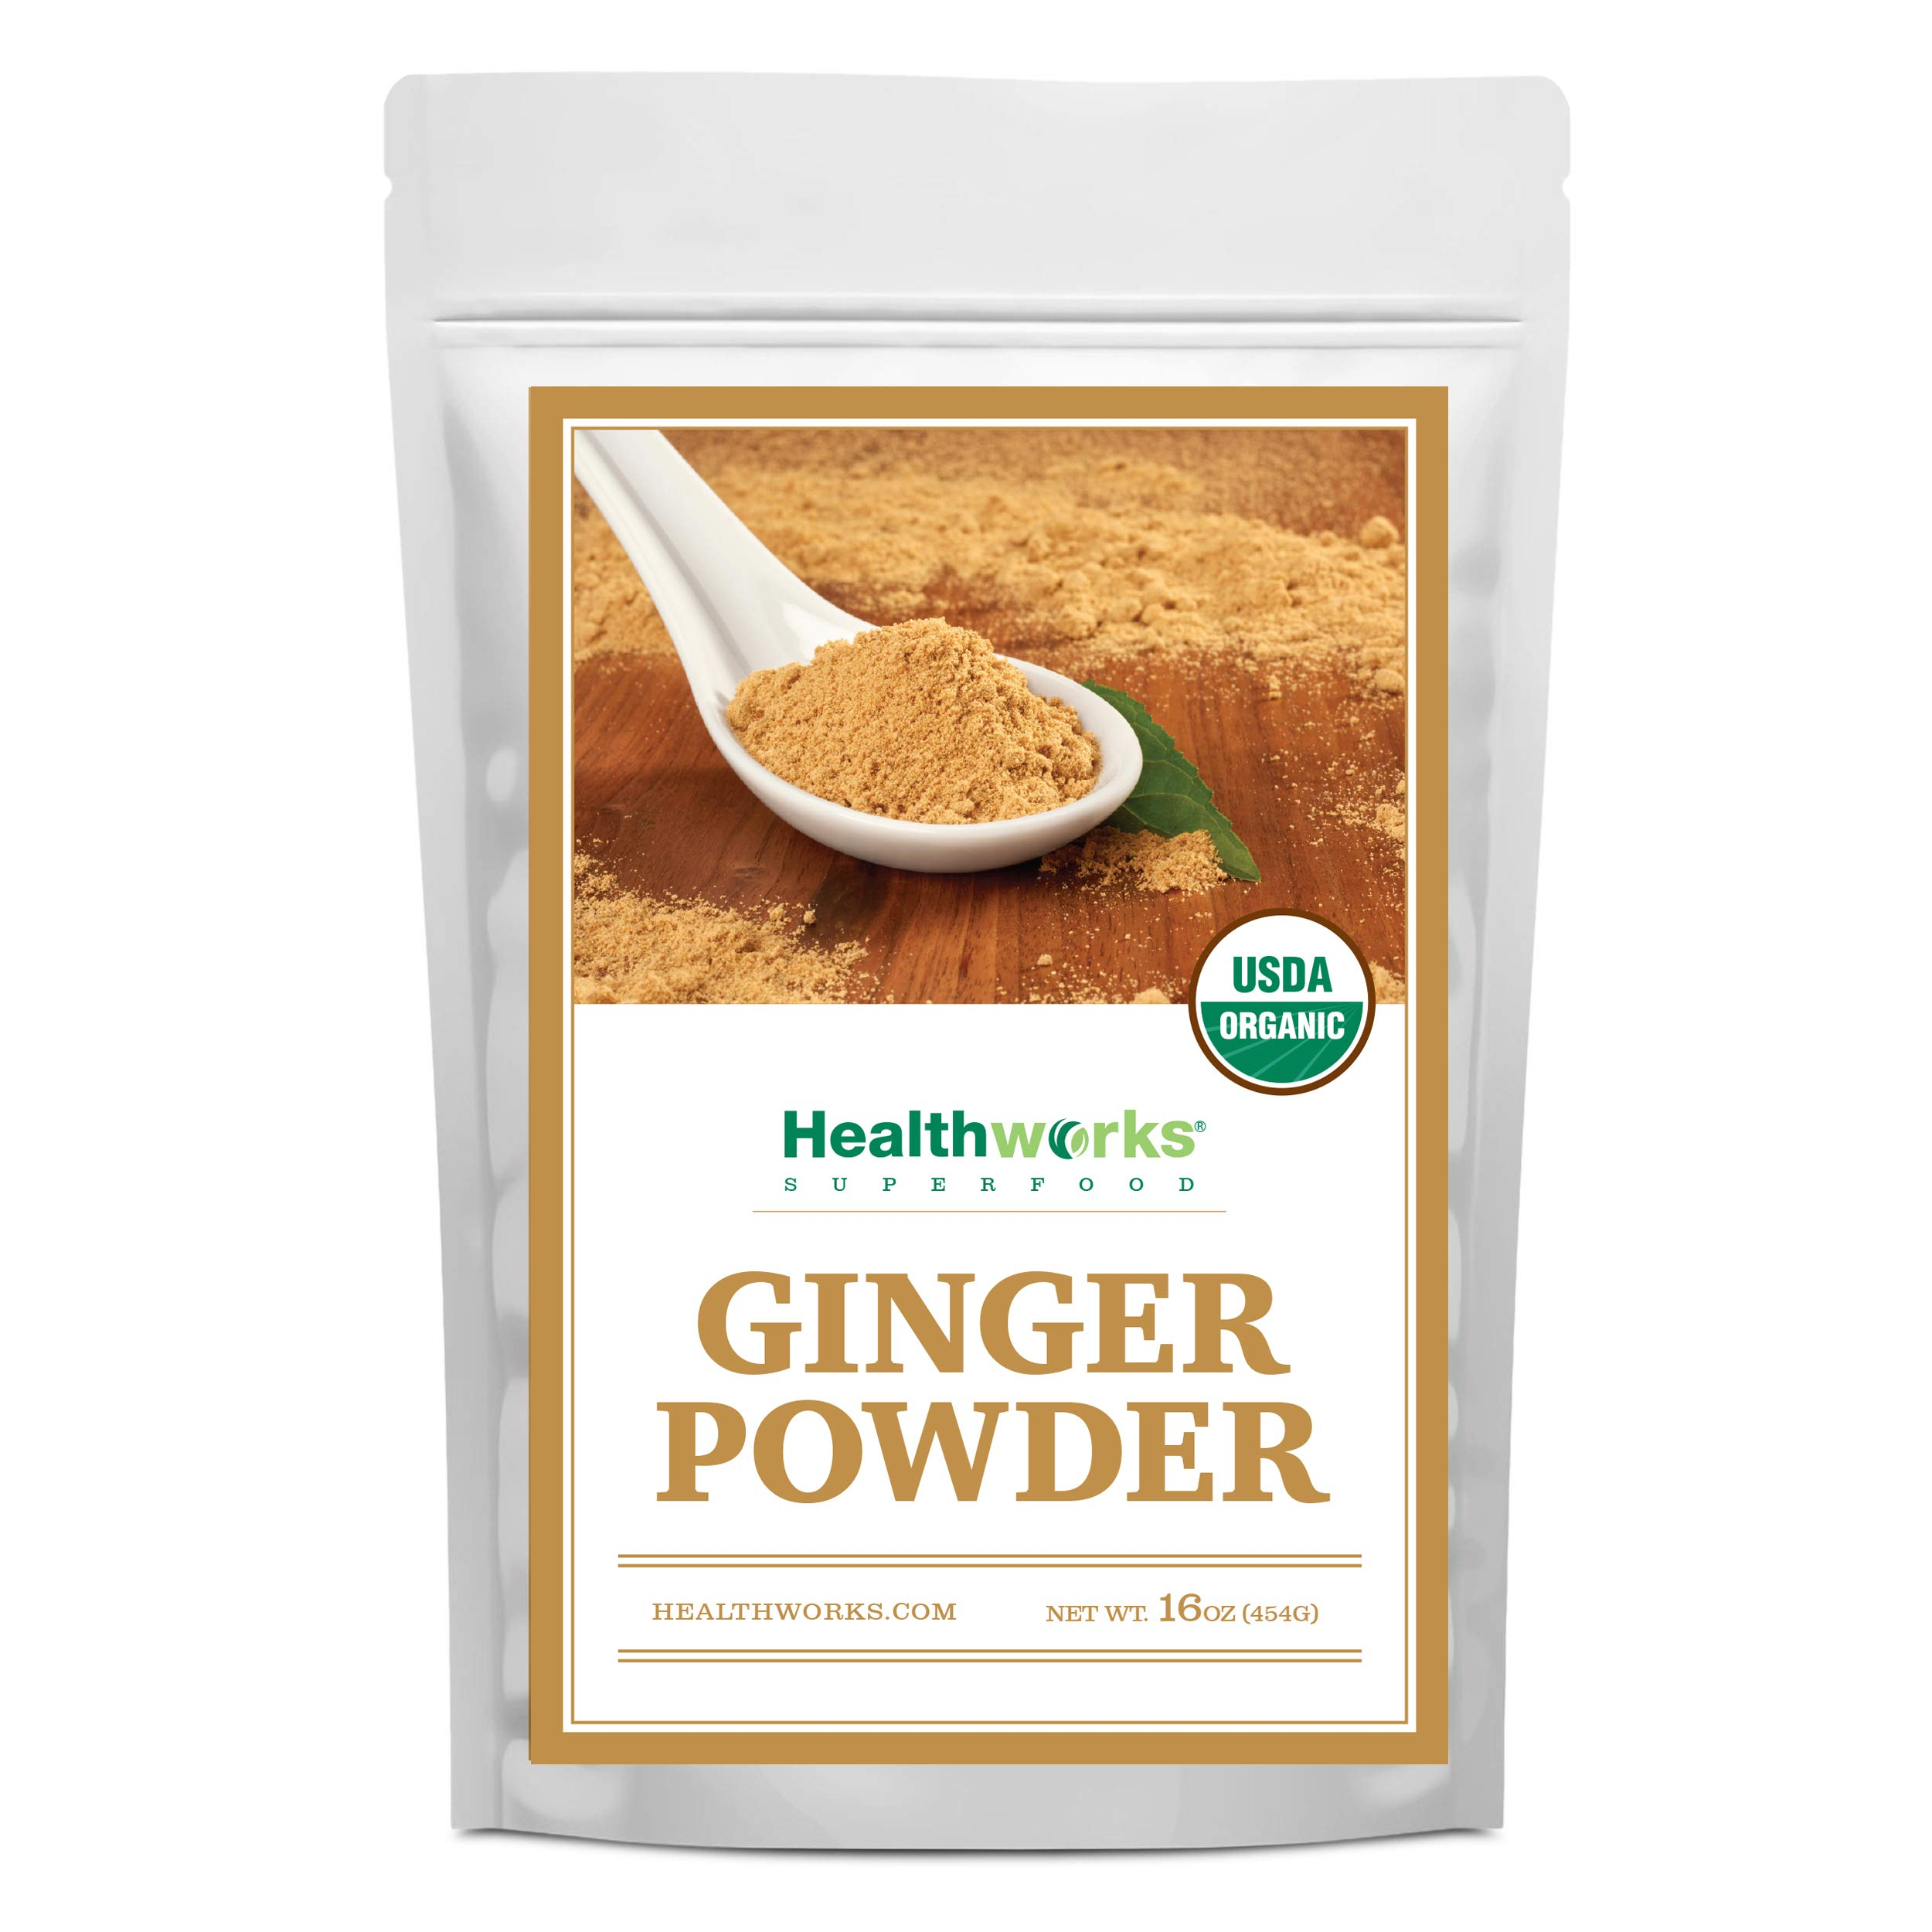 Healthworks Ginger Powder (16 Ounces / 1 Pound)   Ground   Raw   All-Natural & Certified Organic   Keto, Vegan   Great with Coffee, Tea & Juices   Superfood/Spice